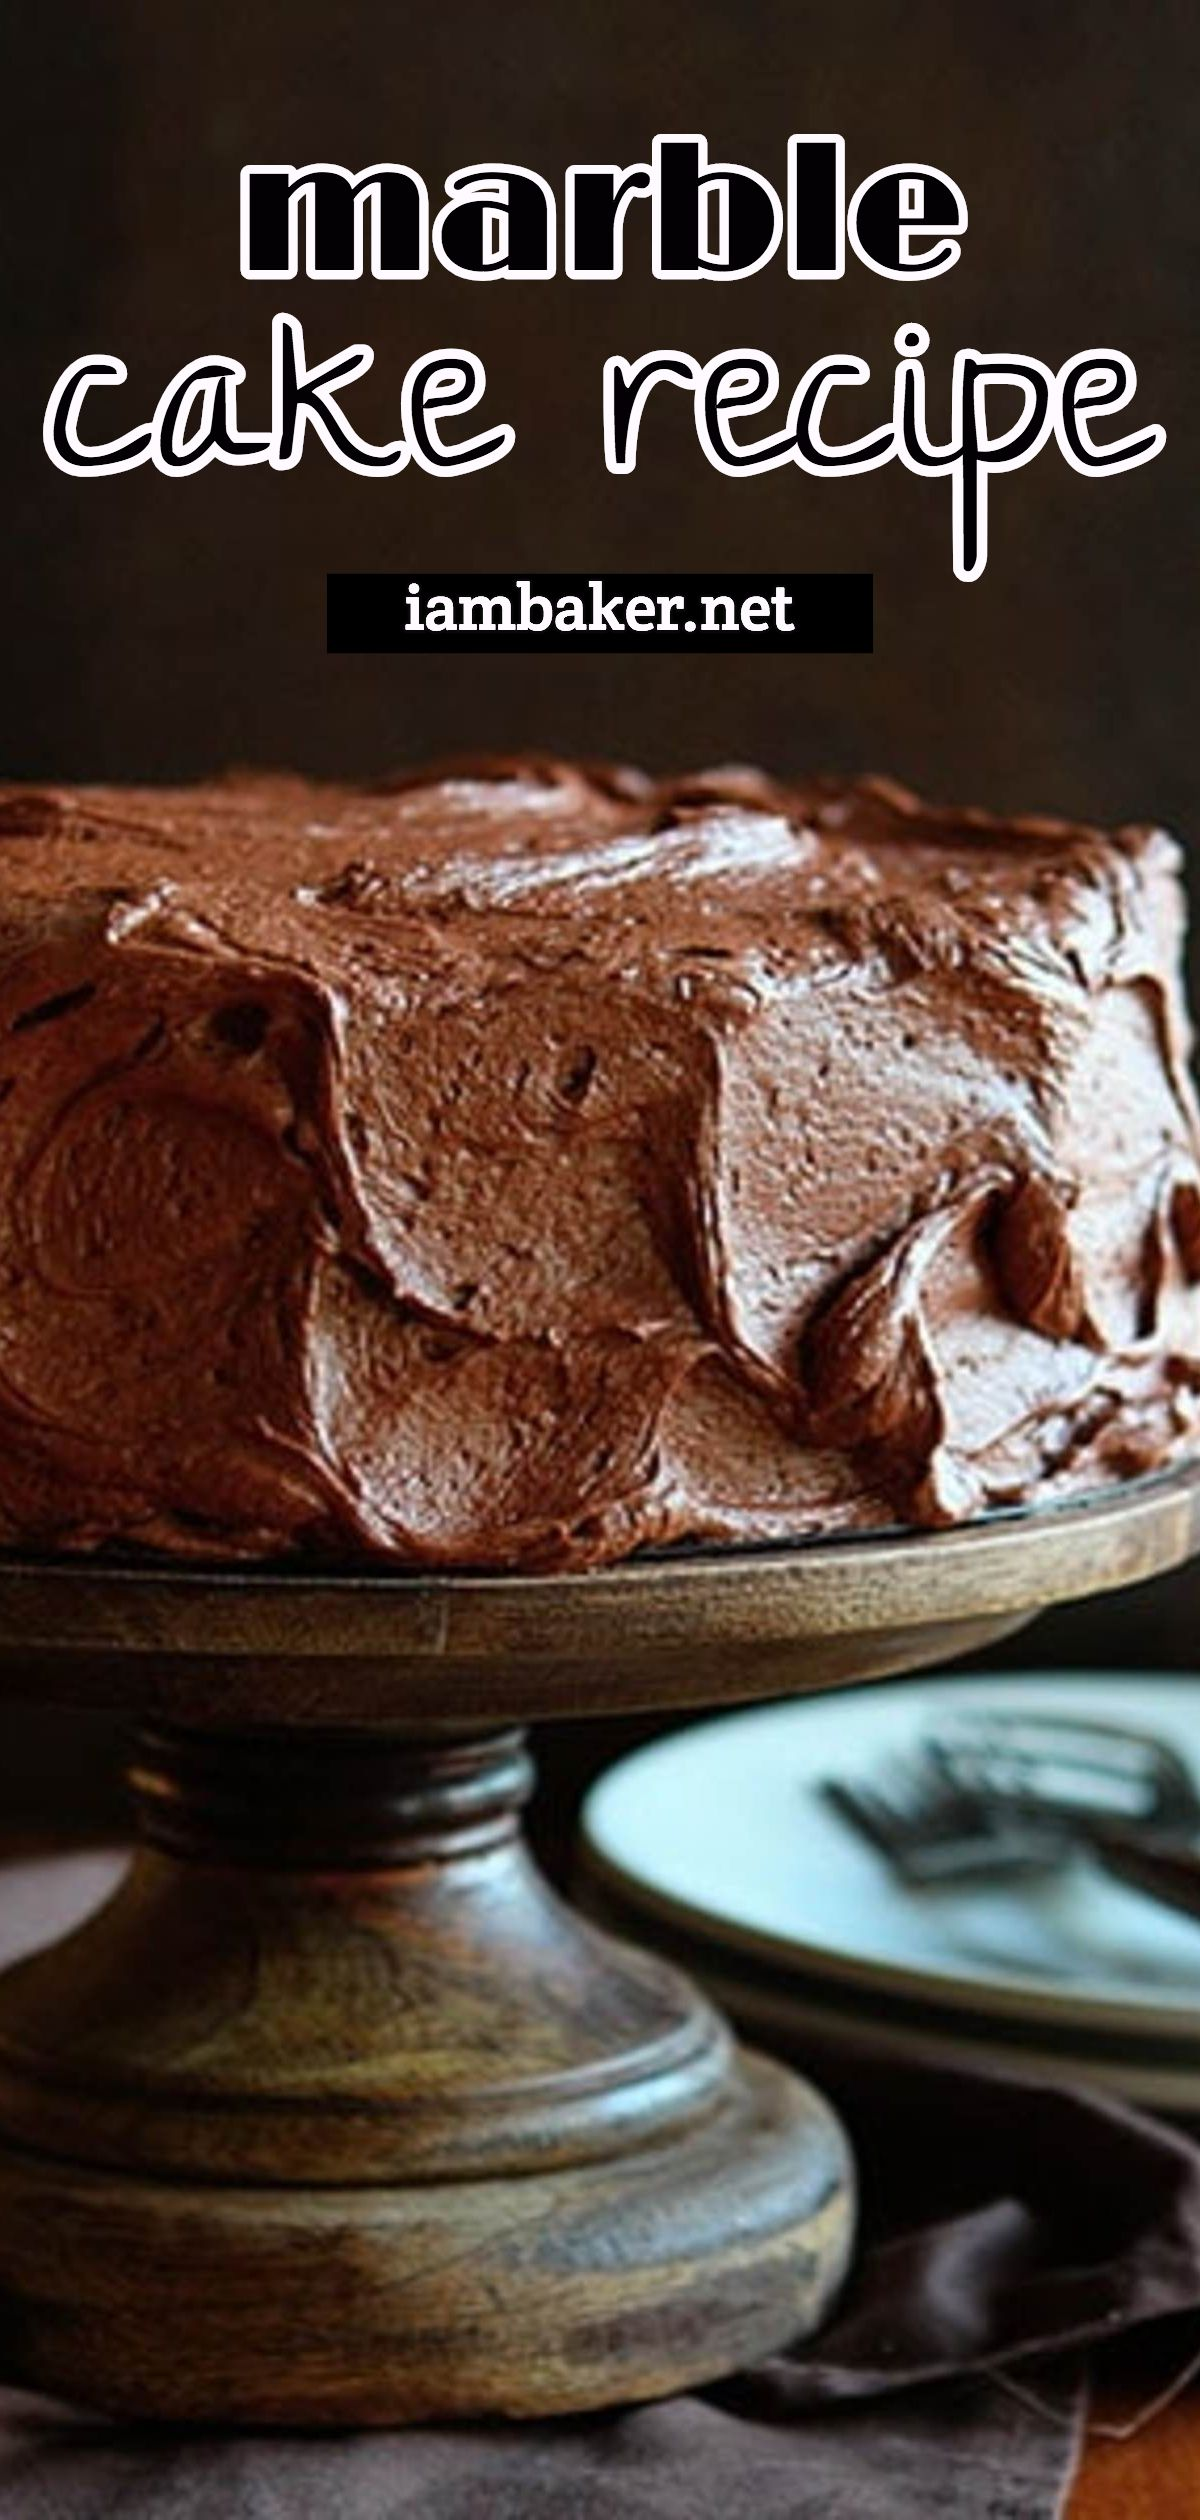 Creating The Perfect Marble Cake Doesnt Have To Be Difficult